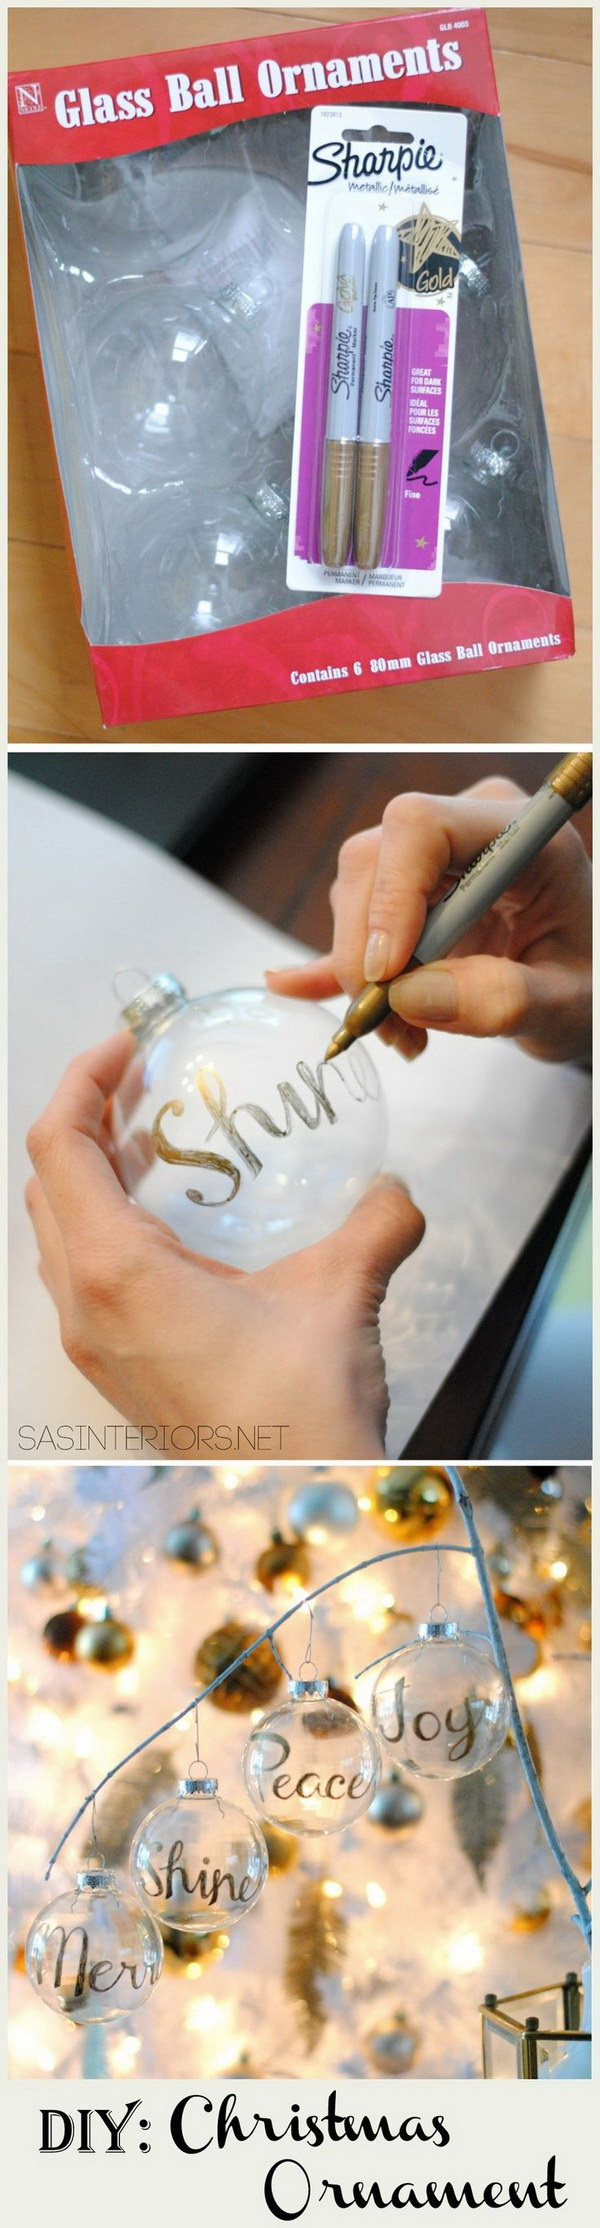 DIY Personalized Word Christmas Ornament. Get the simple Christmas ornament balls personalized with some words!